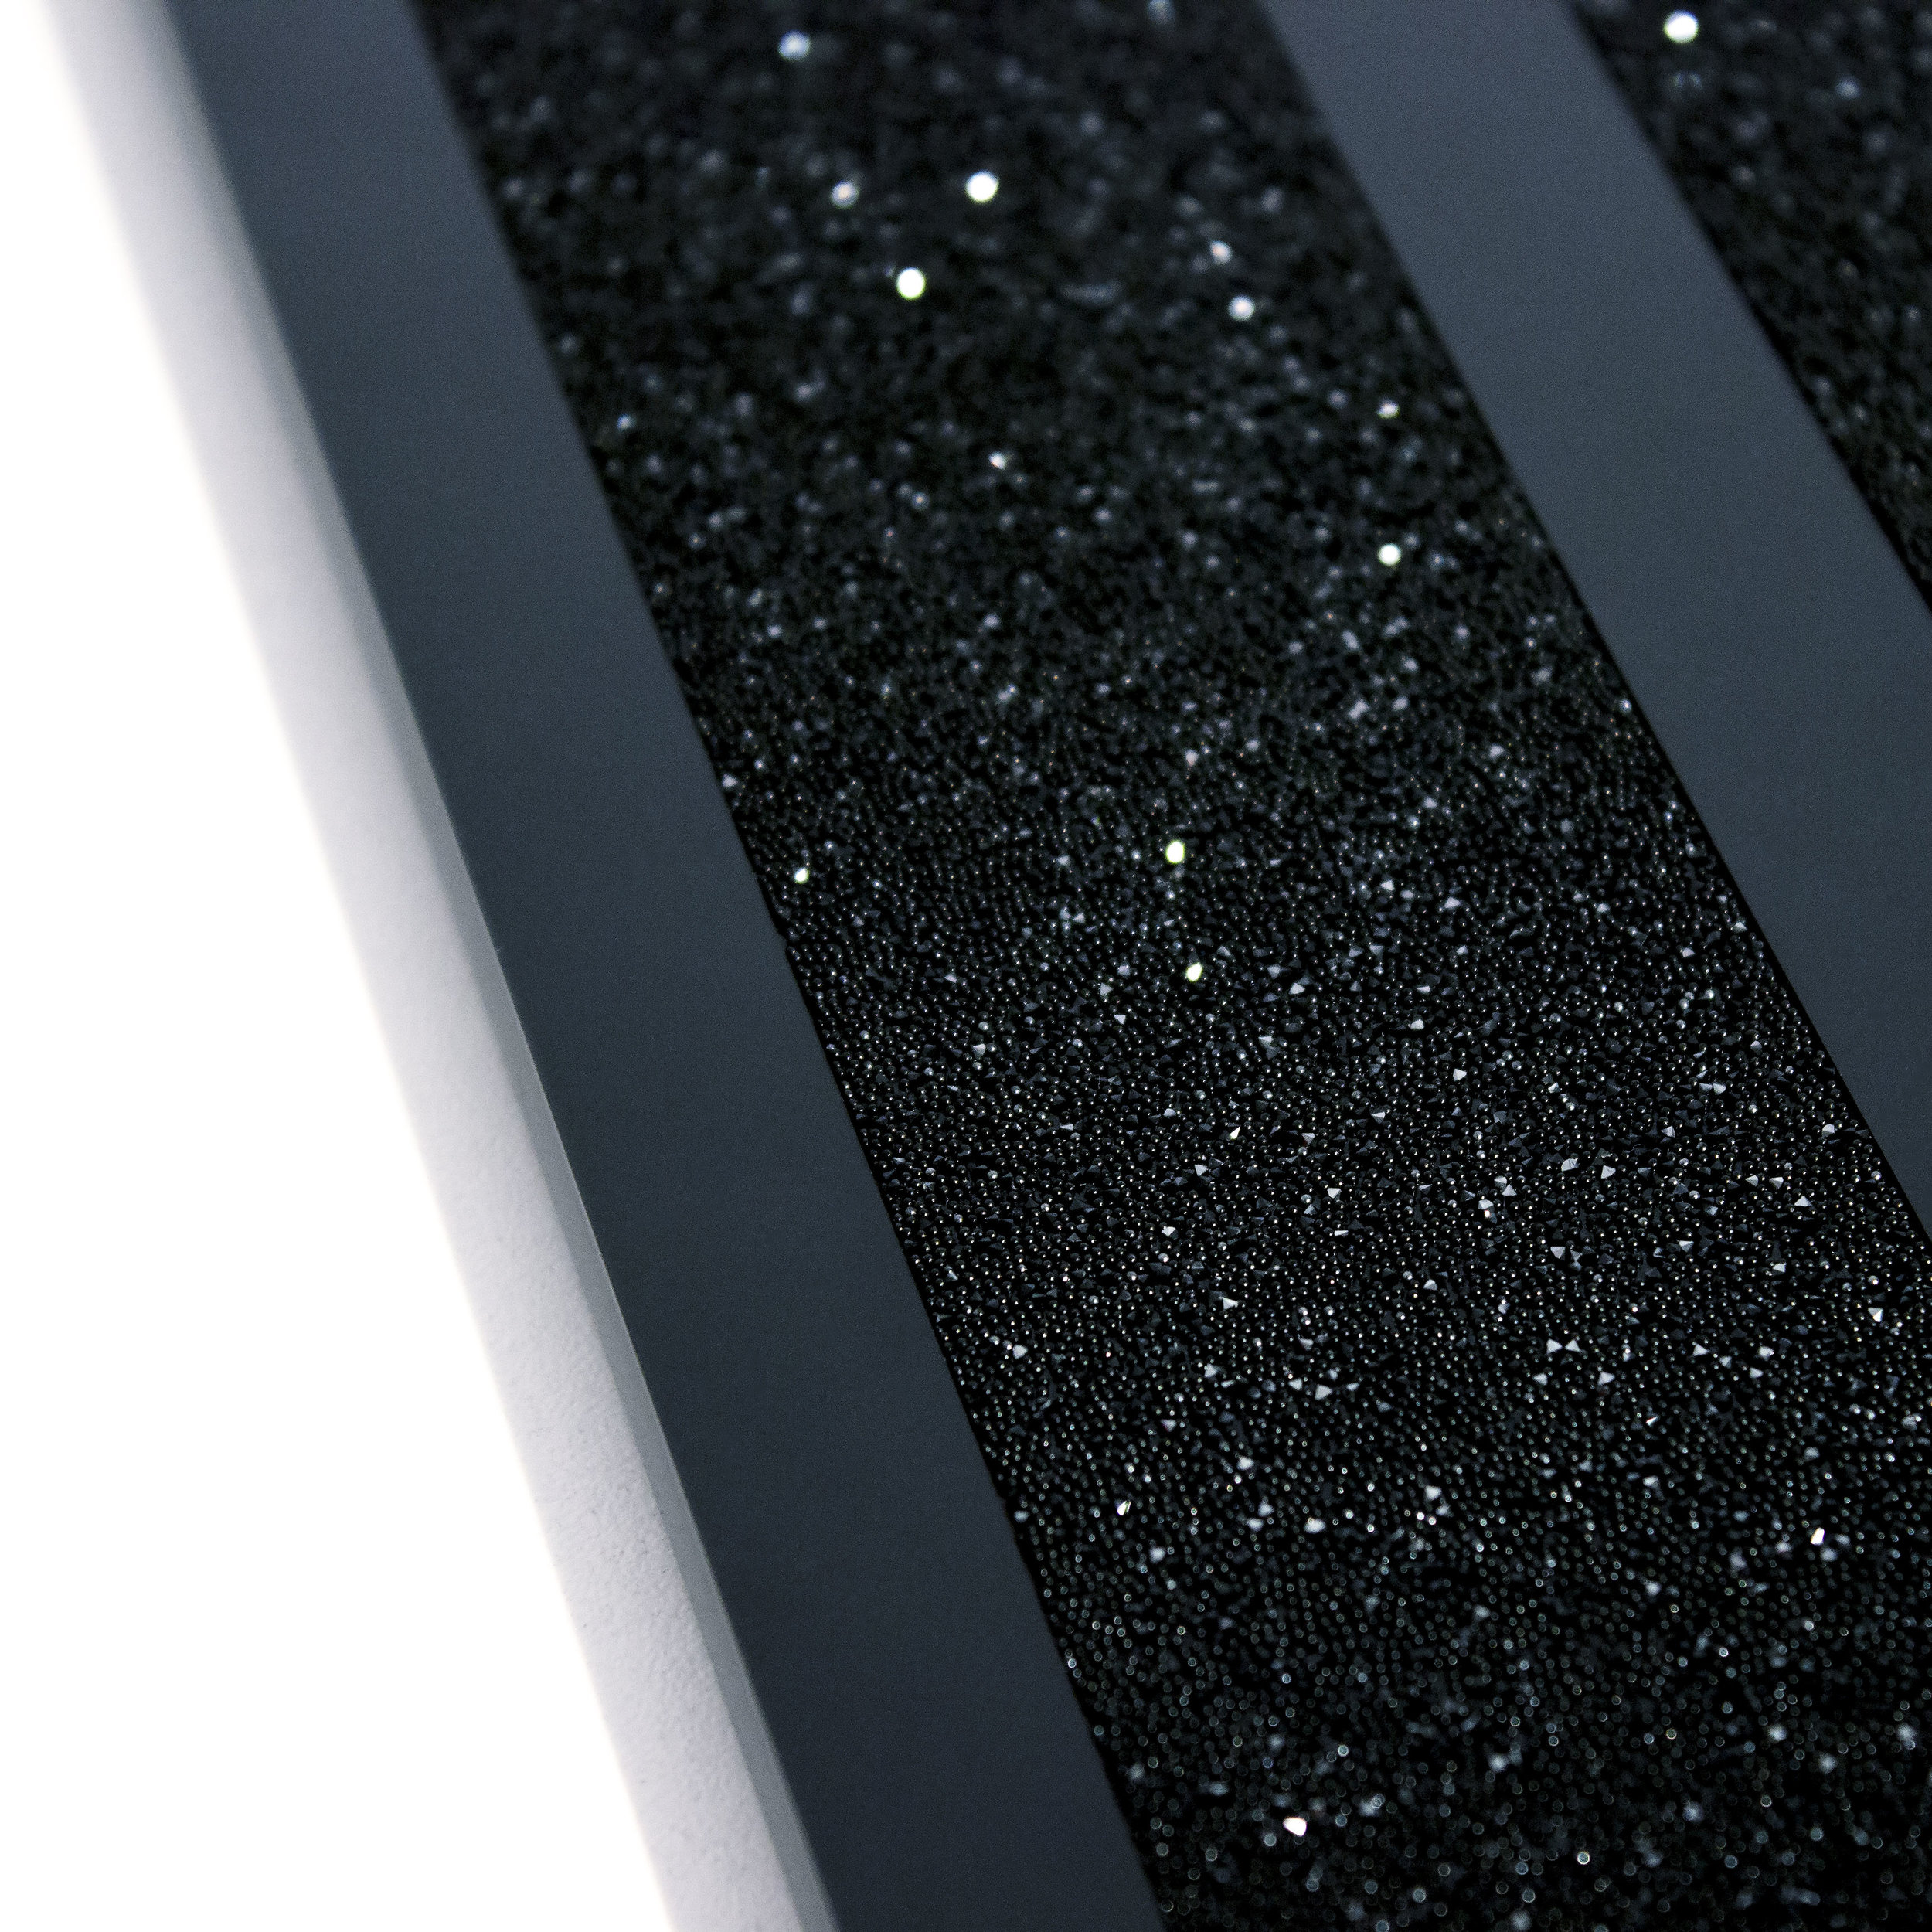 10 Crystal Fabric on Black Solid Surface.JPG